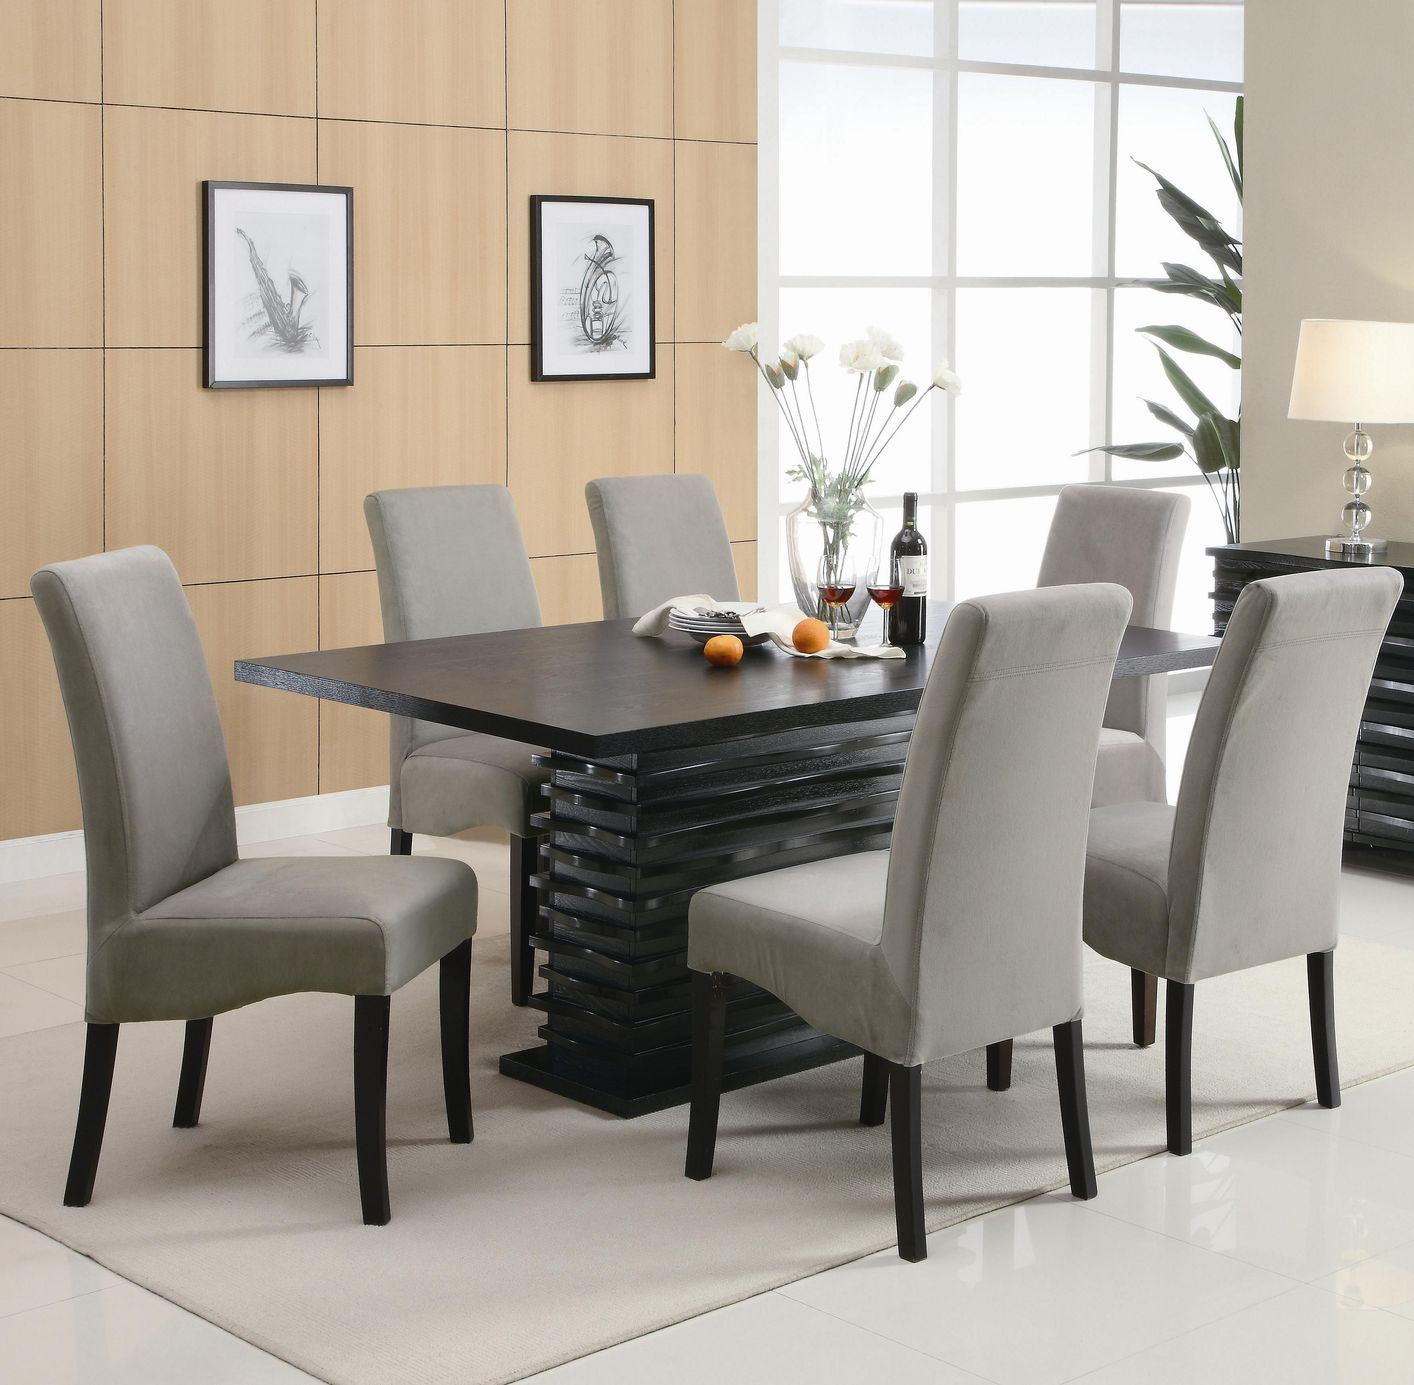 Luxury black dining table and chairs ... black dining room sets wqrnklt